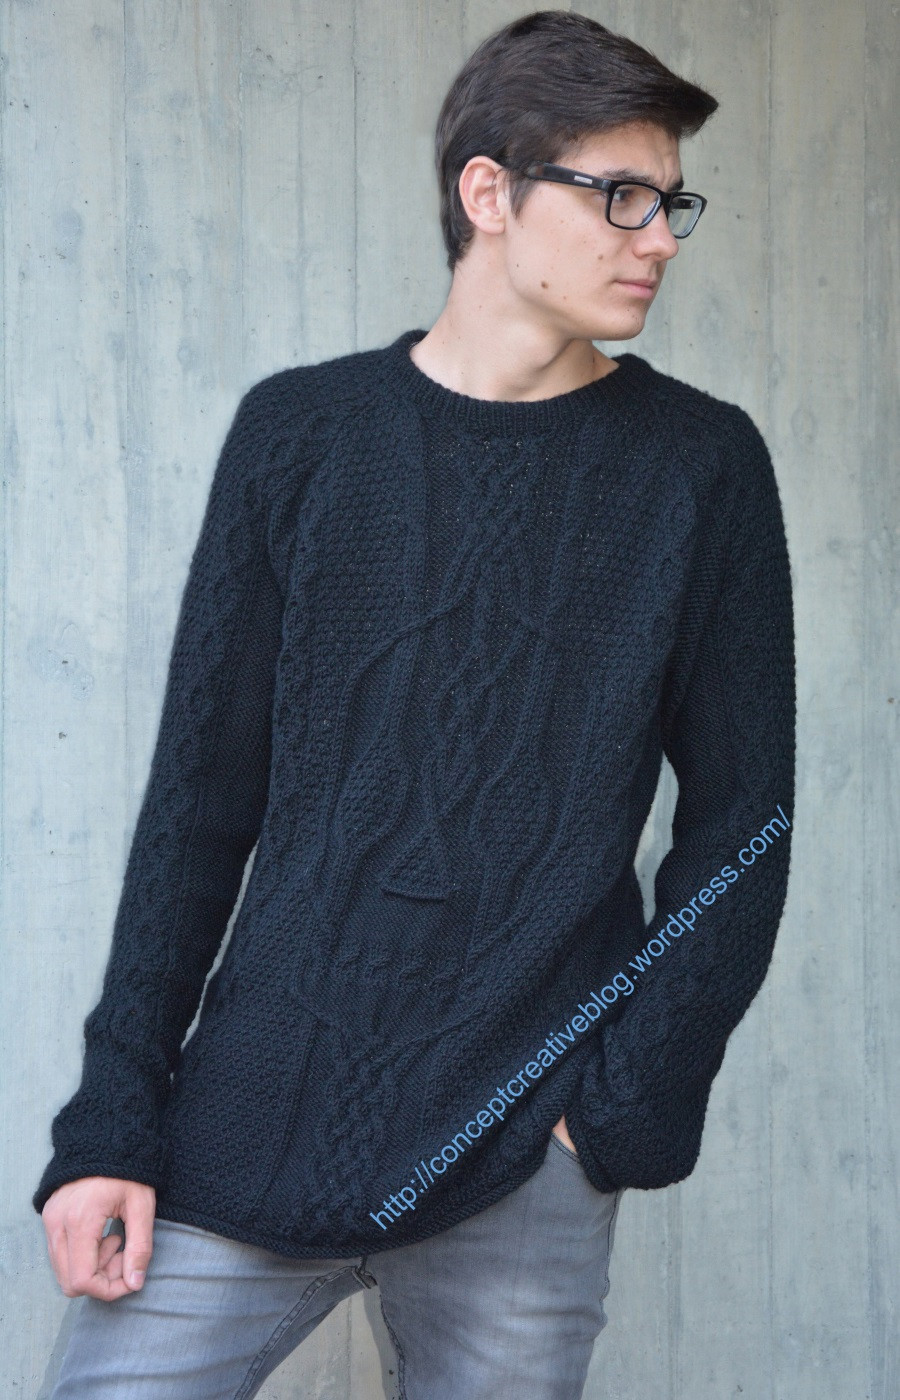 Elegant Knit Cable Pullover with Skull Pattern Free Diagram Cable Knit Sweater Pattern Of Beautiful Cable Knit Dog Sweater Pattern Cable Knit Sweater Pattern